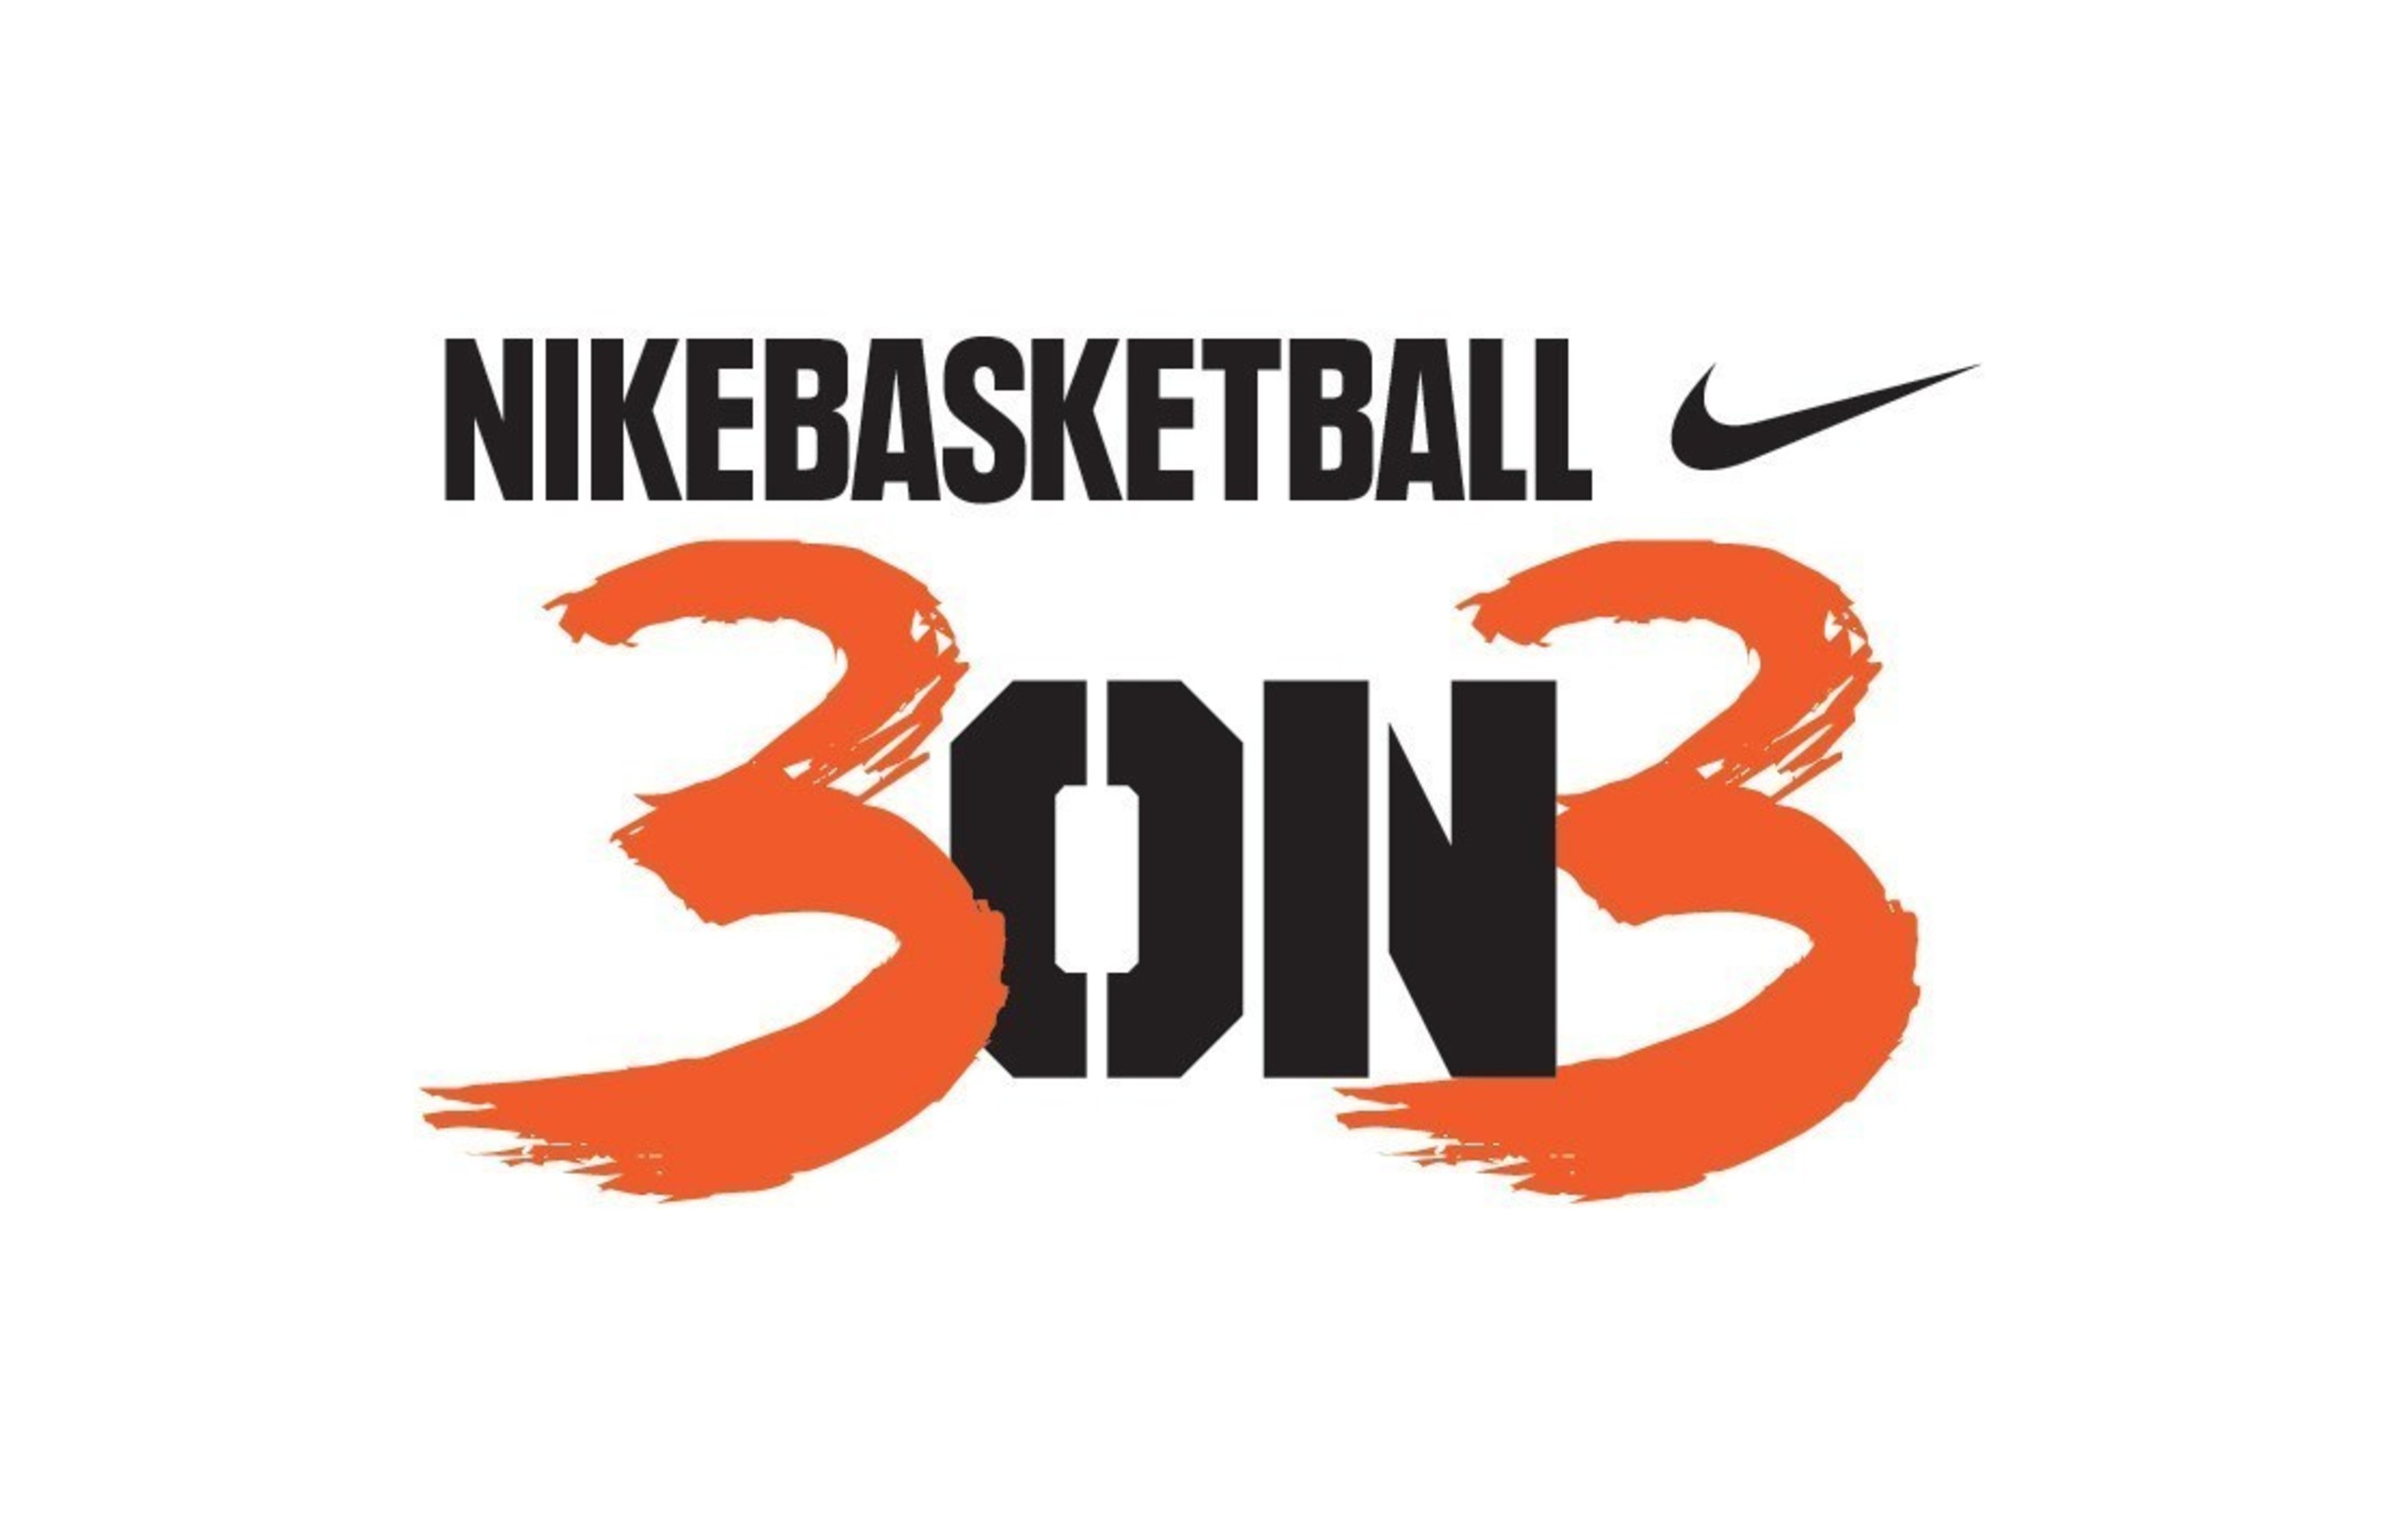 Eighth Annual Nike Basketball 3ON3 Tournament Returns To L.A. Live ...